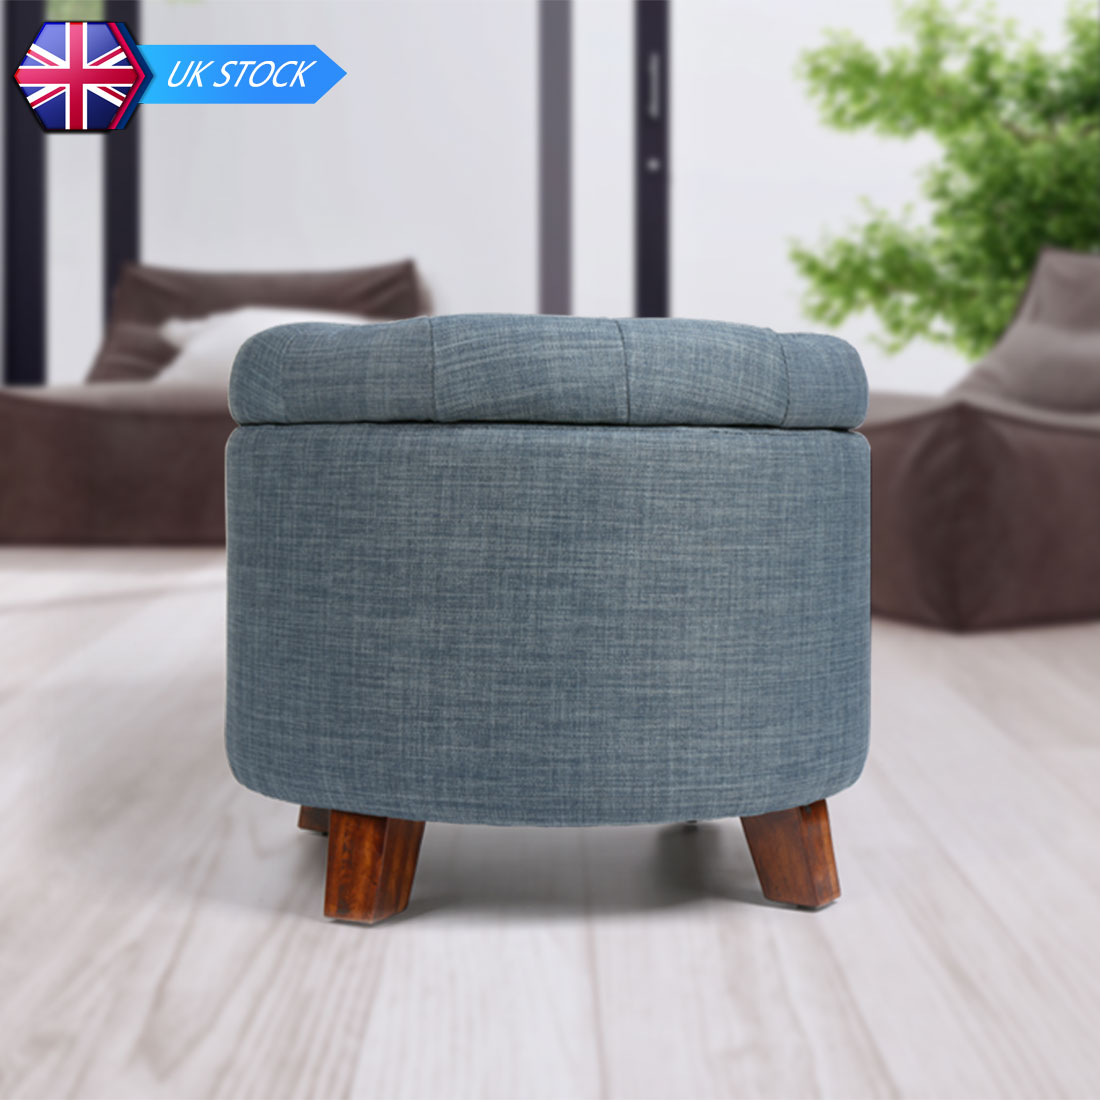 Soft Round Footstool Storage Ottoman Stool with Button Tufted Top